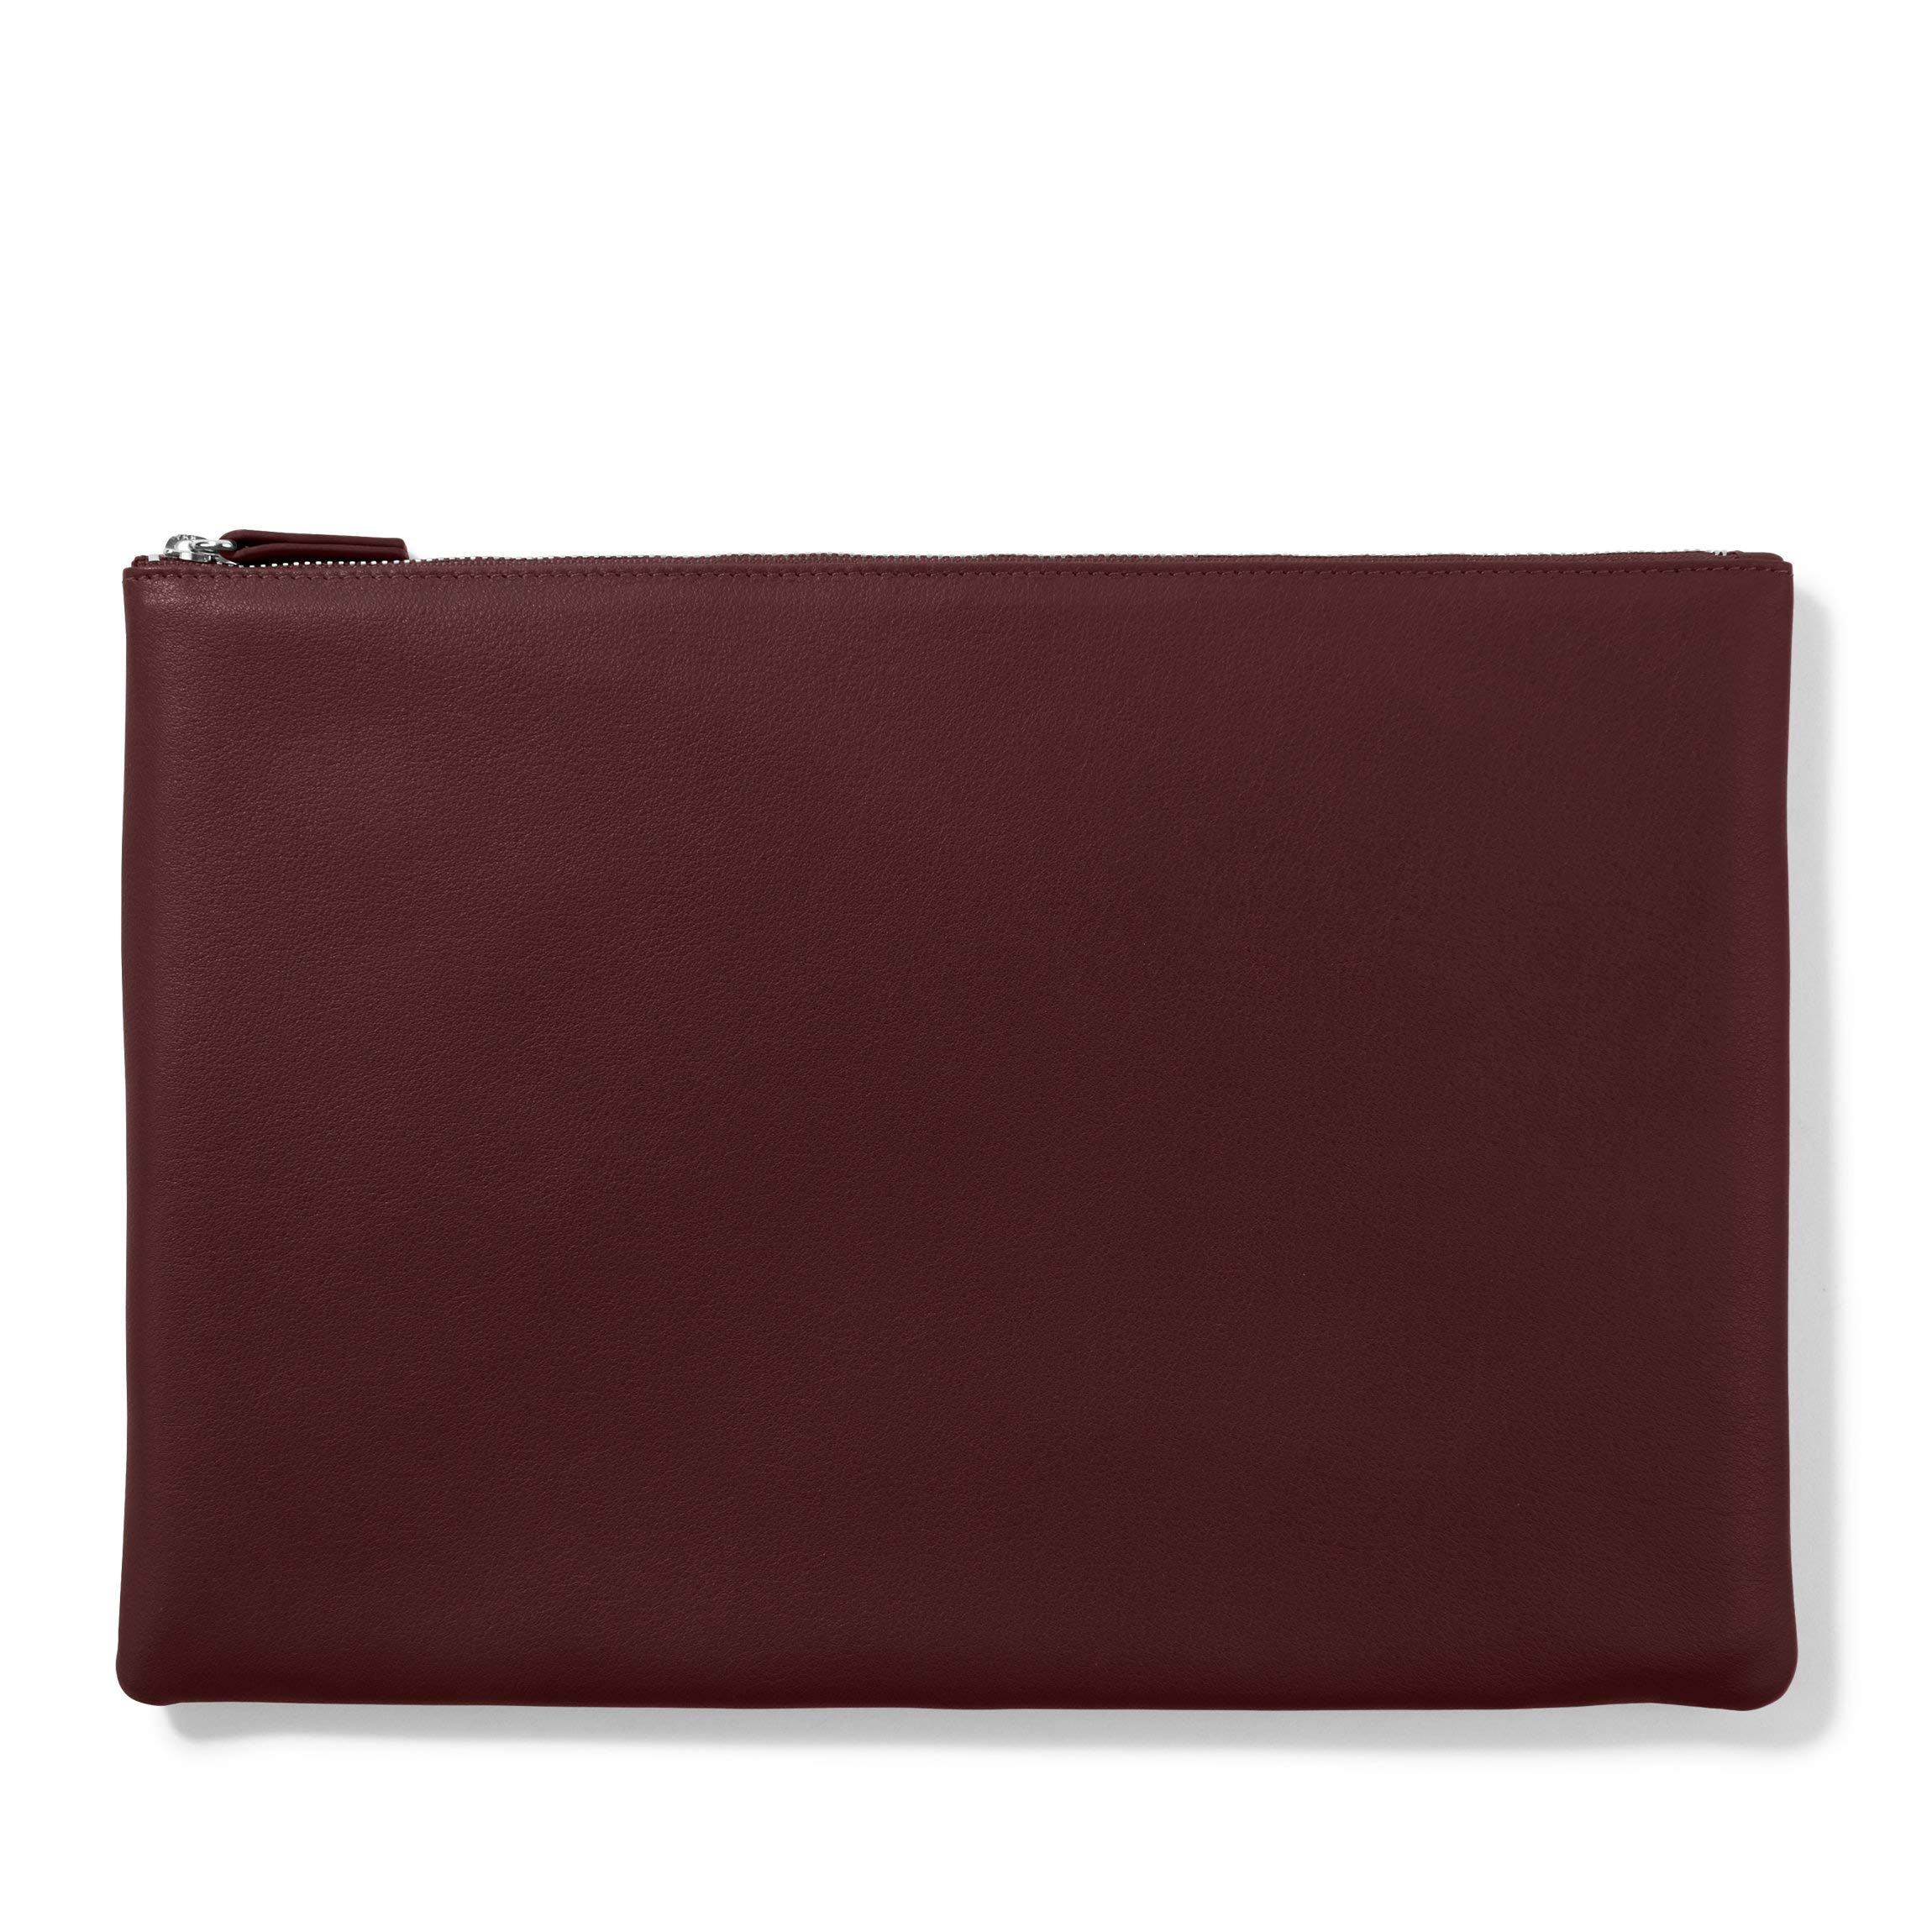 Leatherology Bordeaux Large Pouch by Leatherology